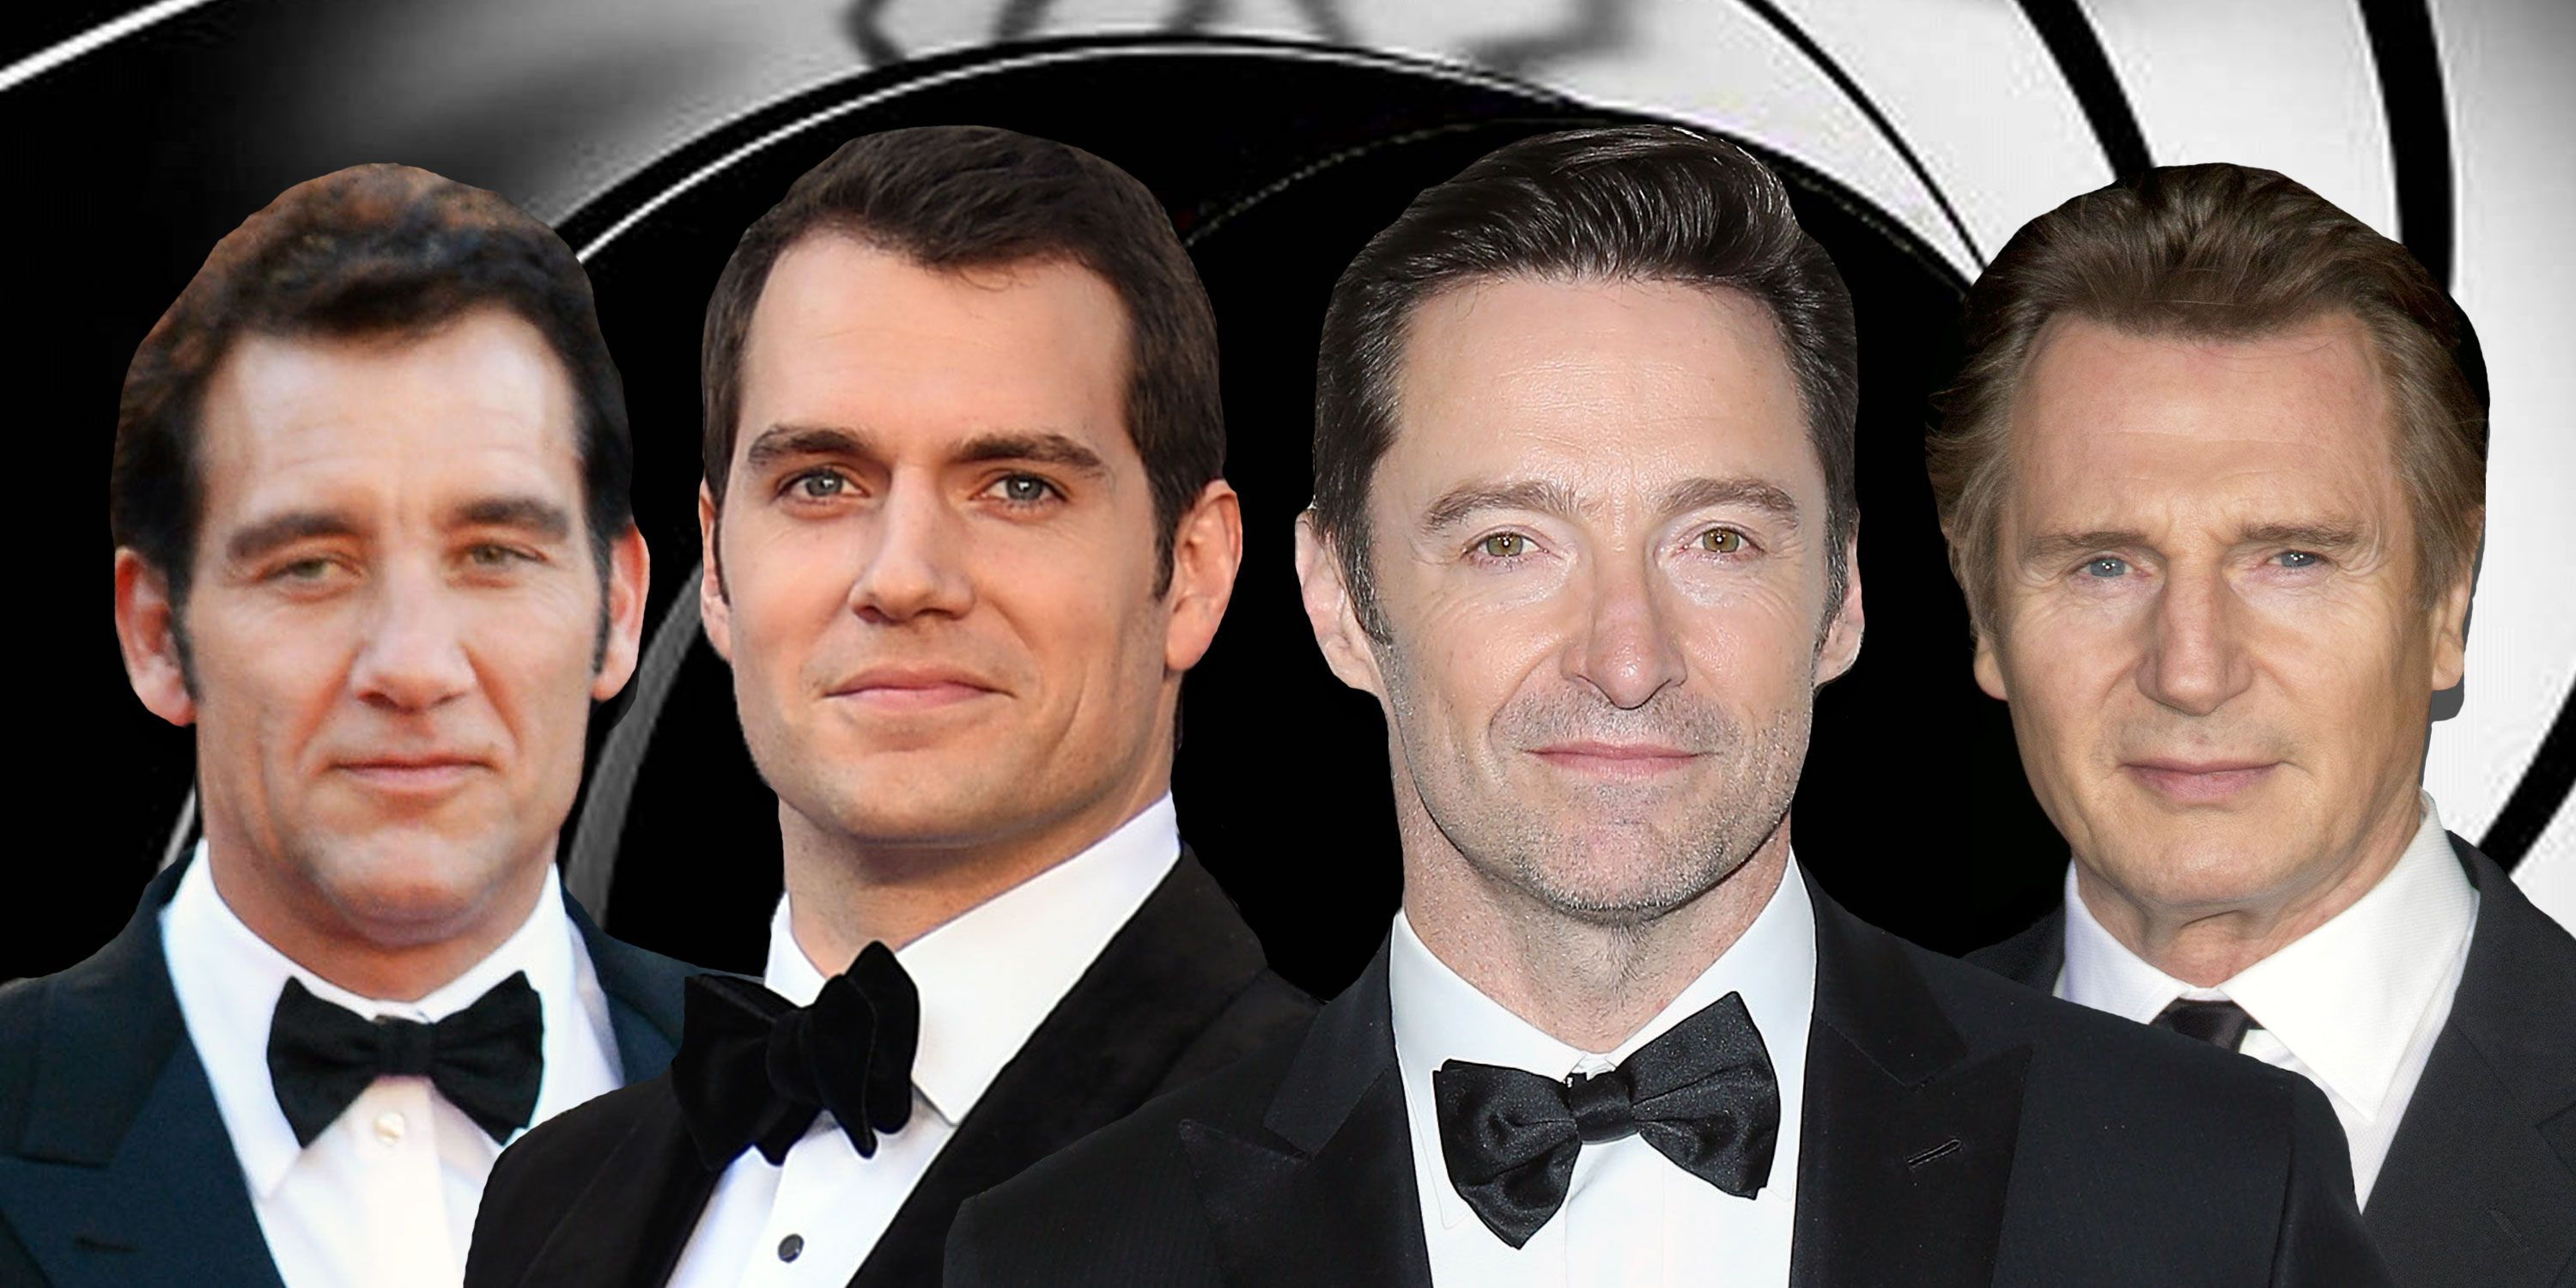 Clive Owen, Henry Cavill, Liam Neeson, Hugh Jackman, James Bond, Considered for the role